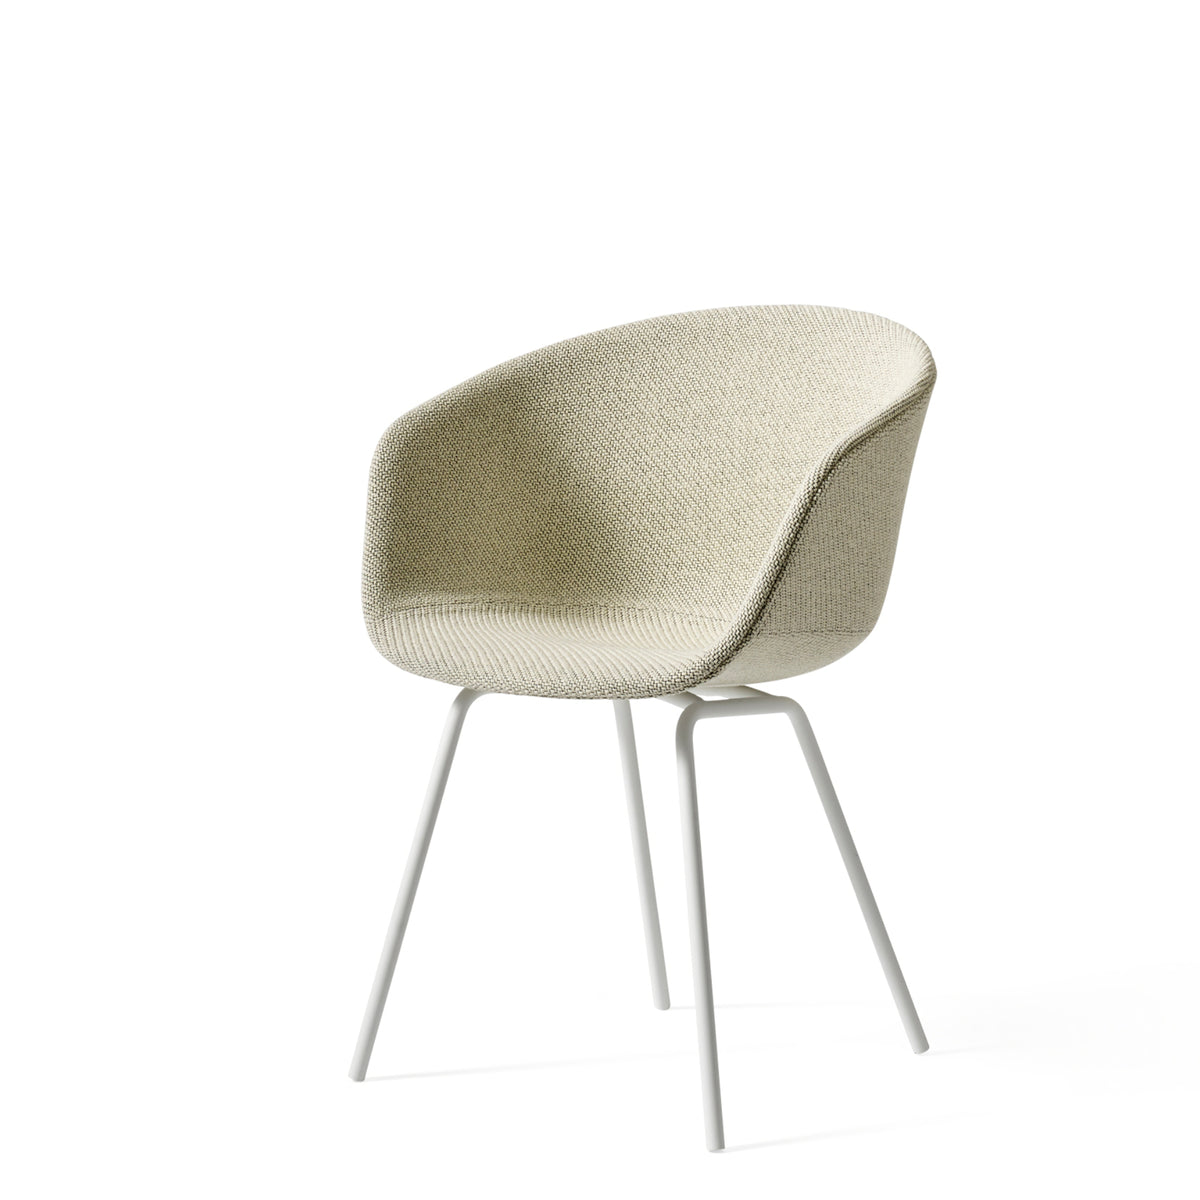 HAY Office About a Chair AAC27, Fabric Upholstery Coda with White Base